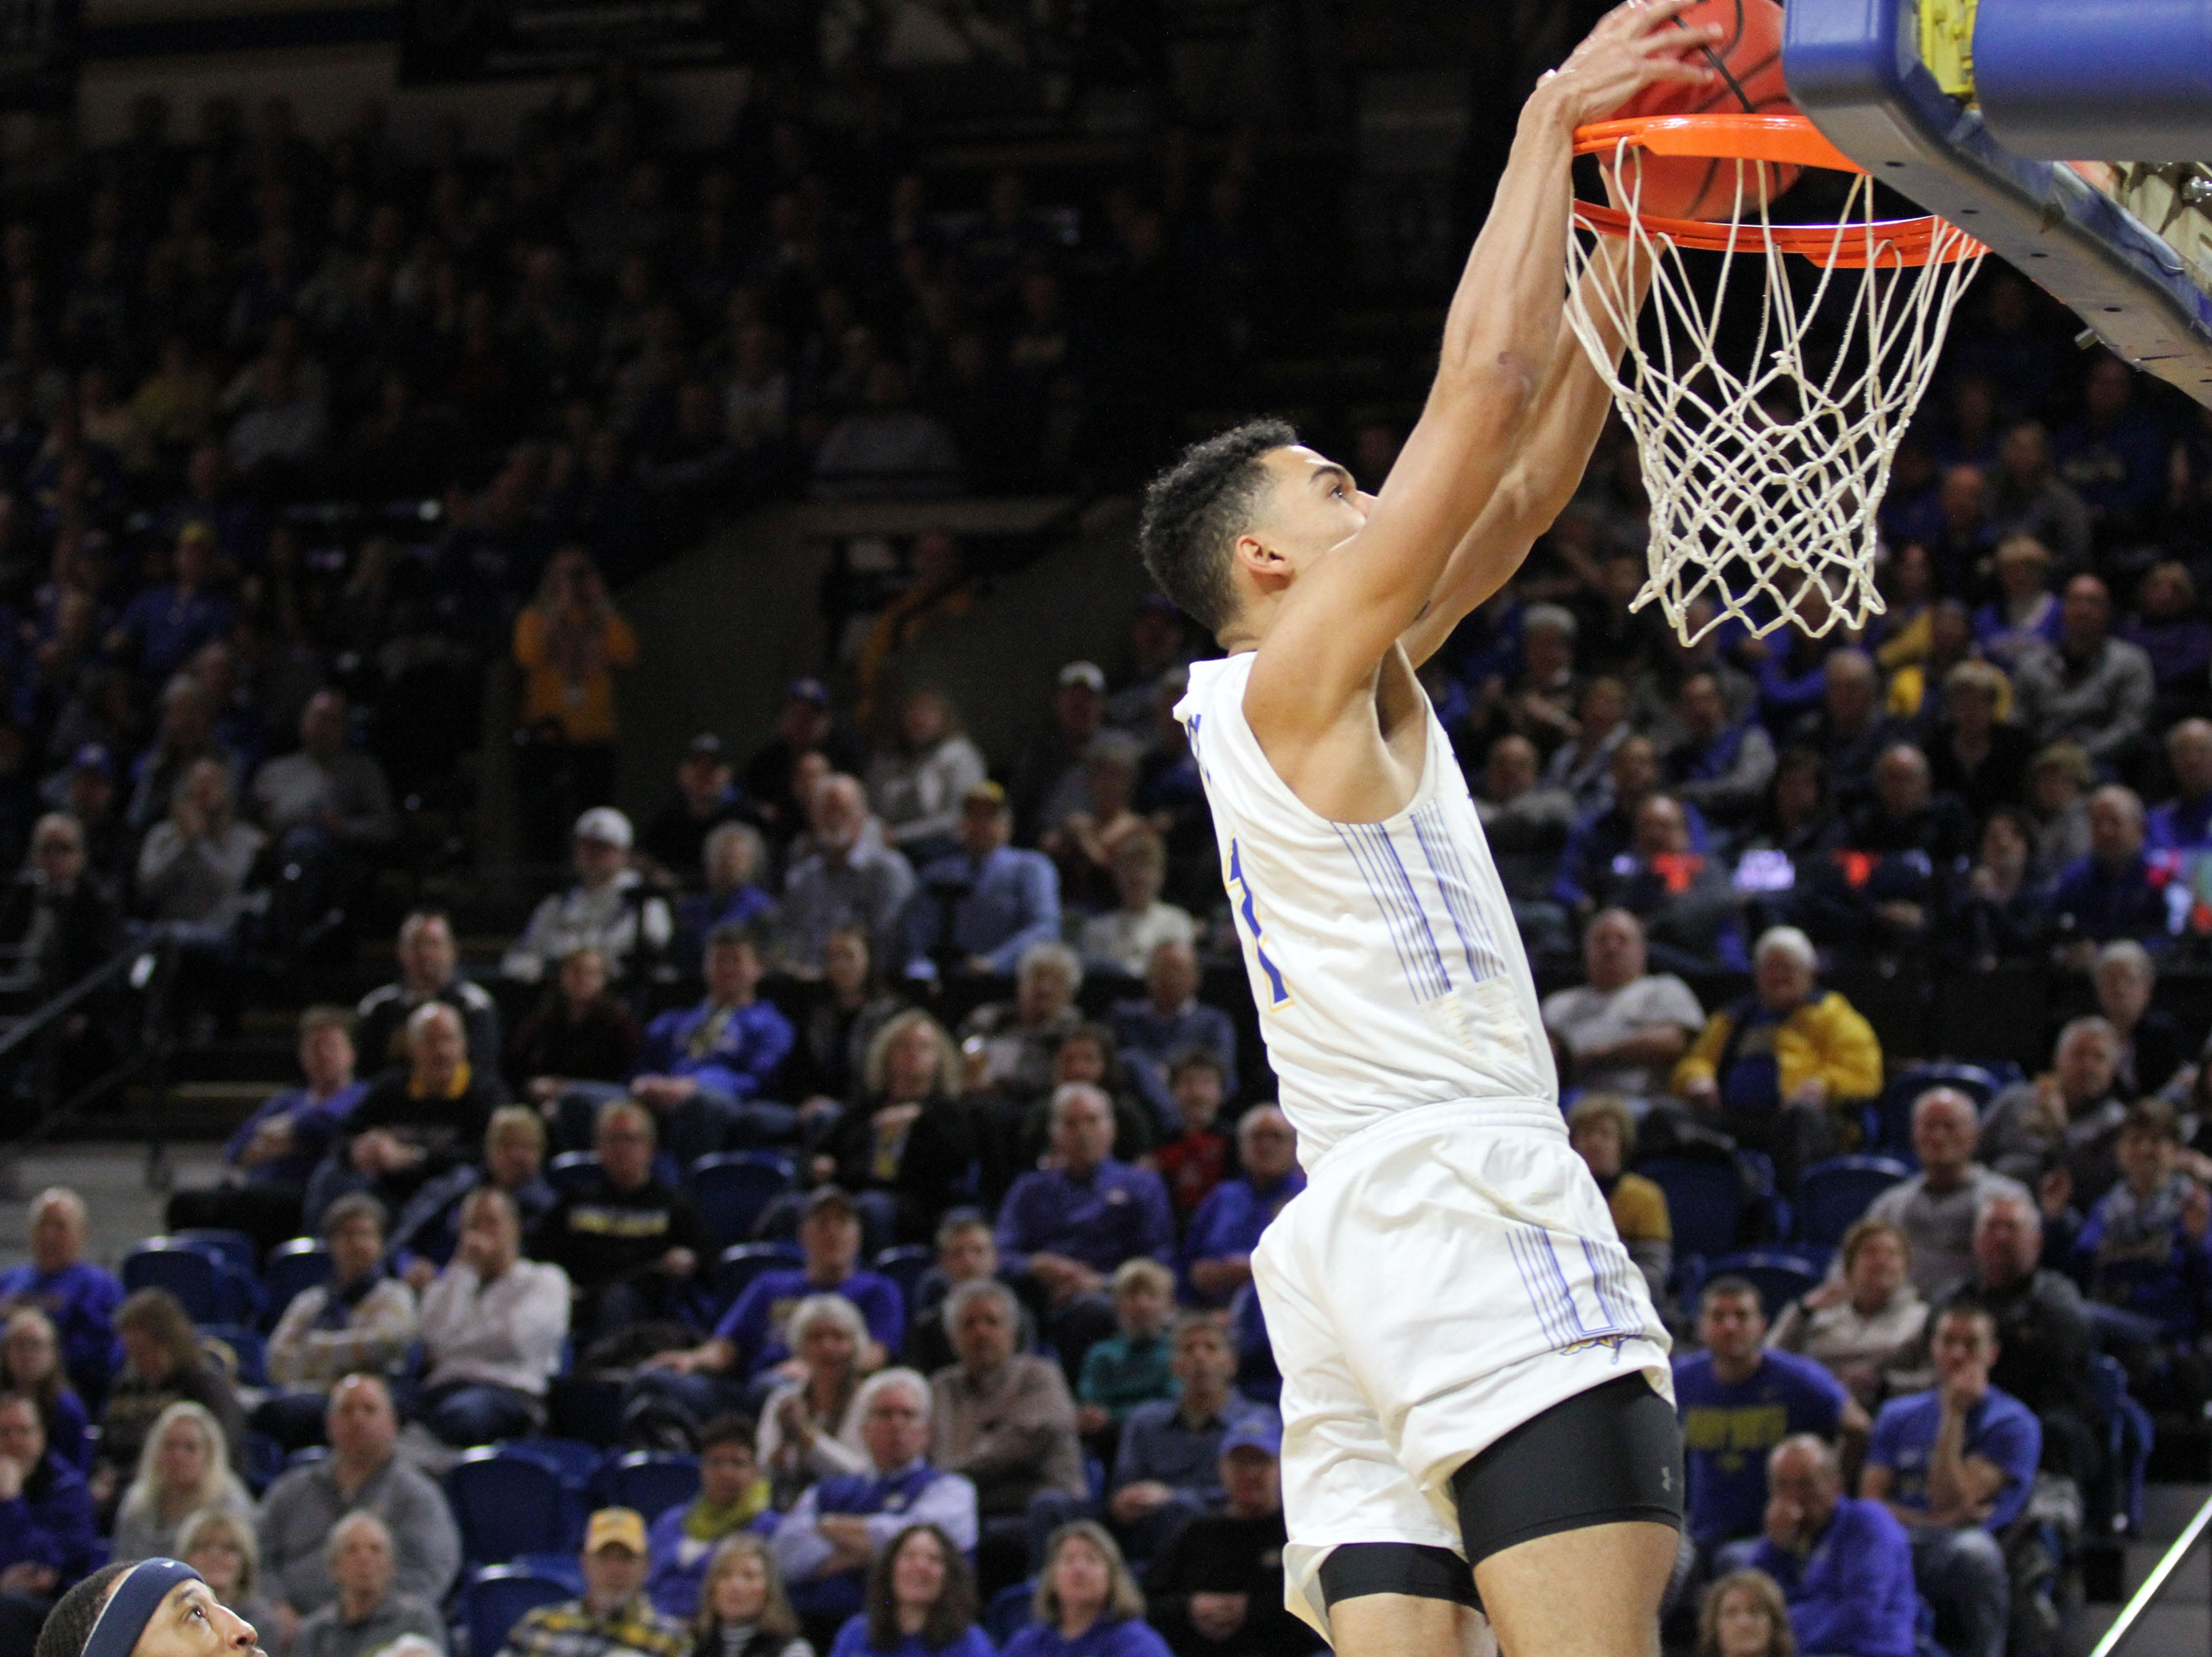 South Dakota State's Skylar Flatten gets a dunk on a fast break during the first half of the Jackrabbit's matchup with Oral Roberts Saturday afternoon at Frost Arena in Brookings.